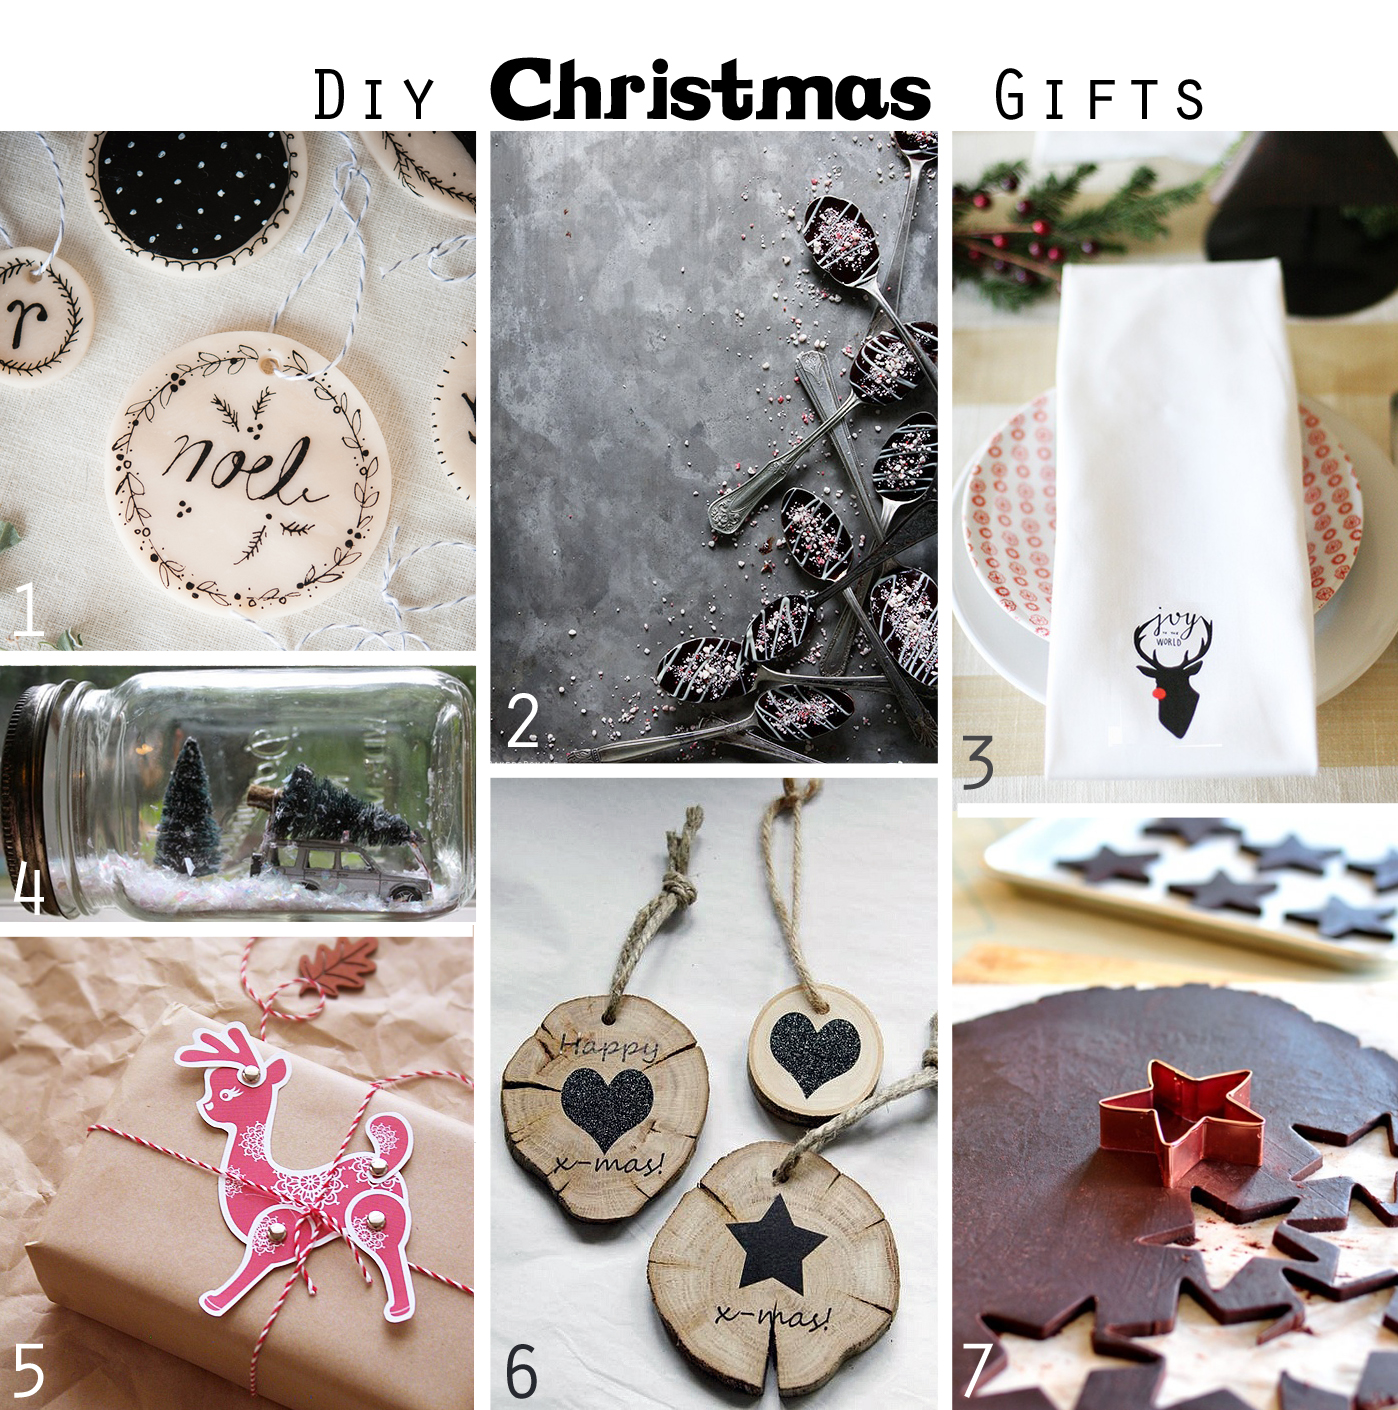 Diy Christmas Ornaments Gift Ideas : Life on churchill street it s where i live and this is